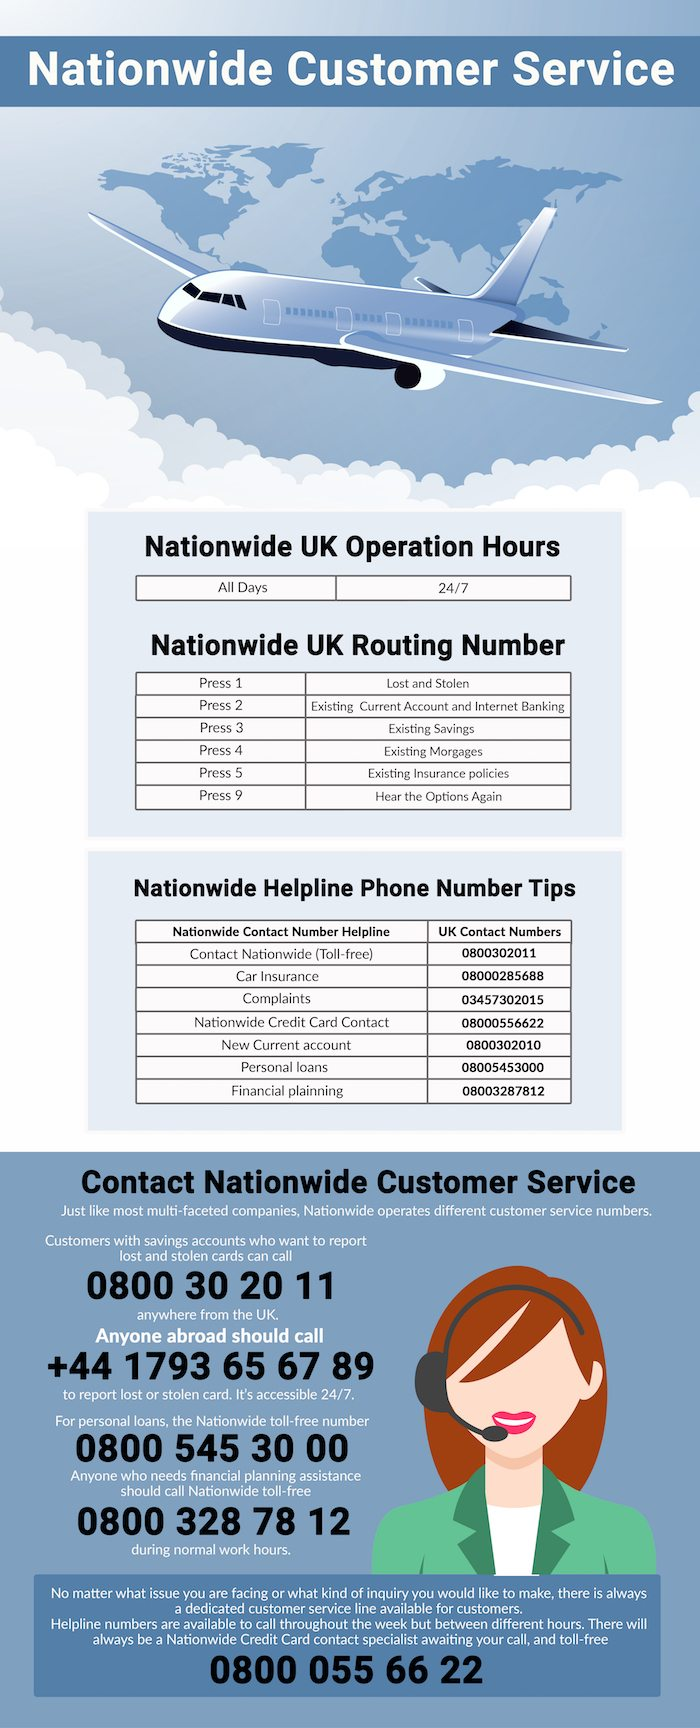 Nationwide Customer Service >> Nationwide Contact Helpline Customer Service Search